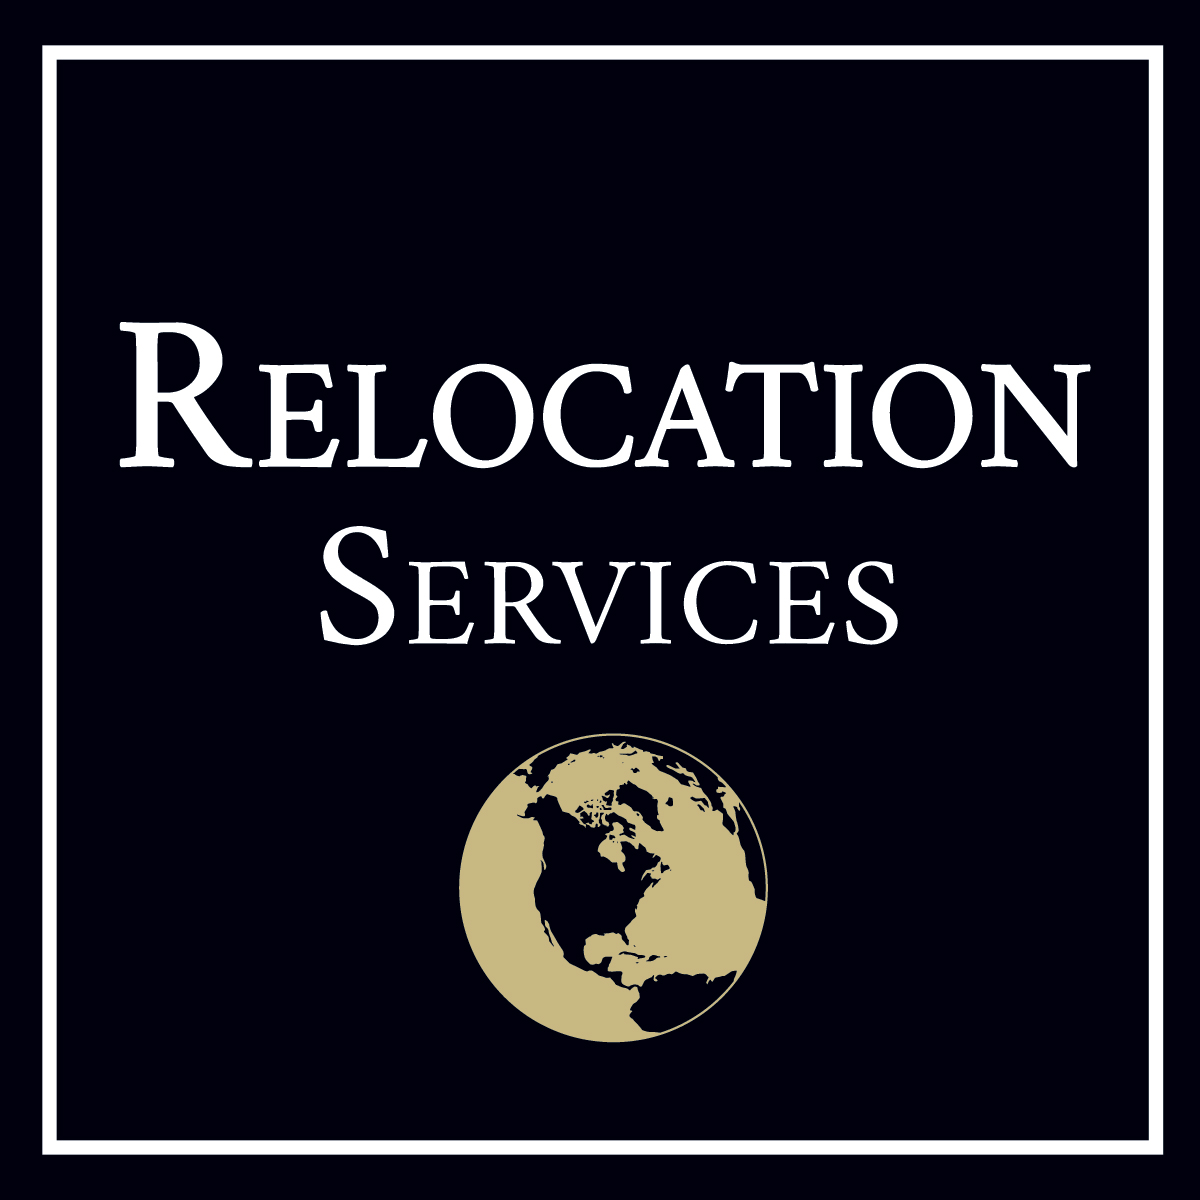 Relocation & Referral Services by the Randall Family of Companies